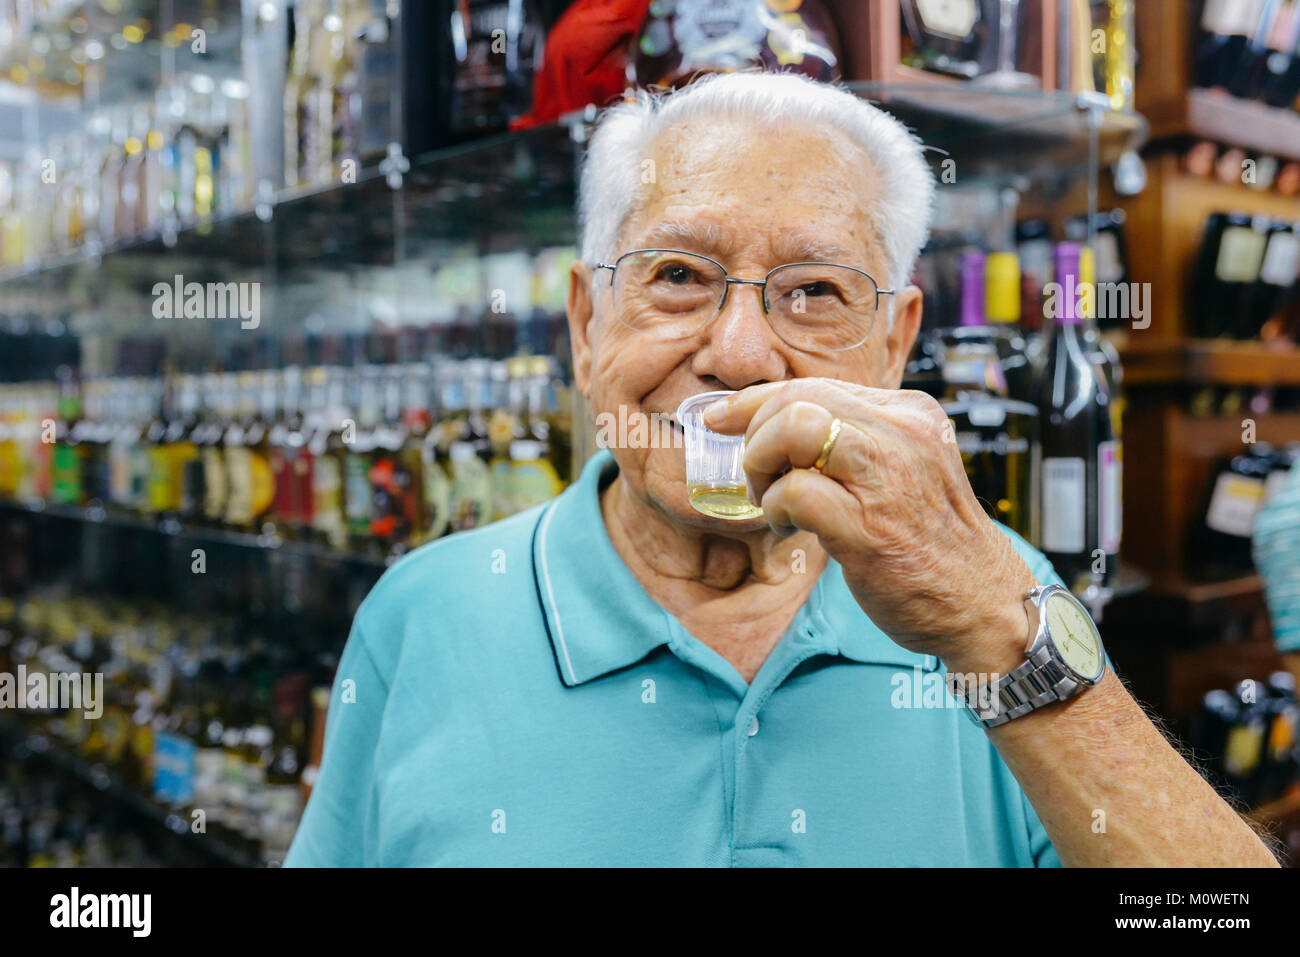 Model Released: Older man 80-90 samples a type of cachaca drink, made from distilled sugar cane, Mercado Central - Stock Image